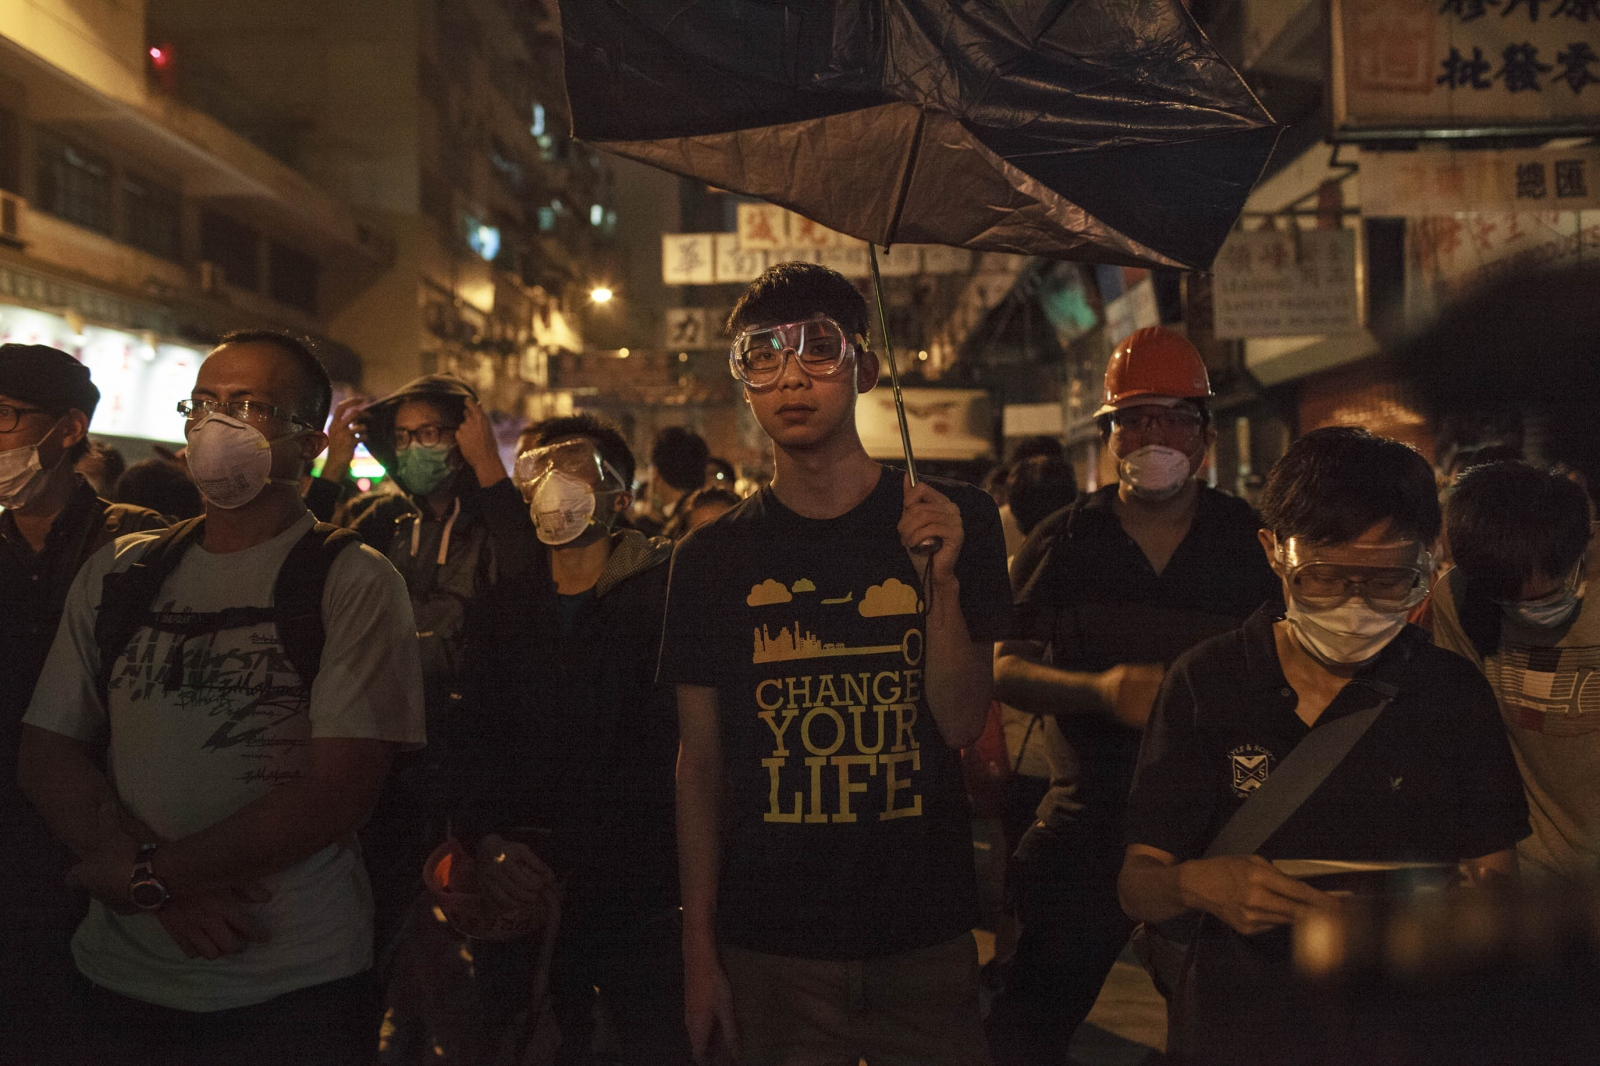 A protester holds an inverted umbrella during scuffles with the police in the Mong Kok district of Hong Kong, on November 25, 2014, the night before the Mong Kok protest site was cleared by the authorities. Pro-democracy demonstrators blocked major thoroughfares and roads of the city for just over two months, calling for universal suffrage in 2017 with the right to elect the city's own chief executive-- without Beijing's pre-approval of candidates-- a demand that remains rejected by Beijing.